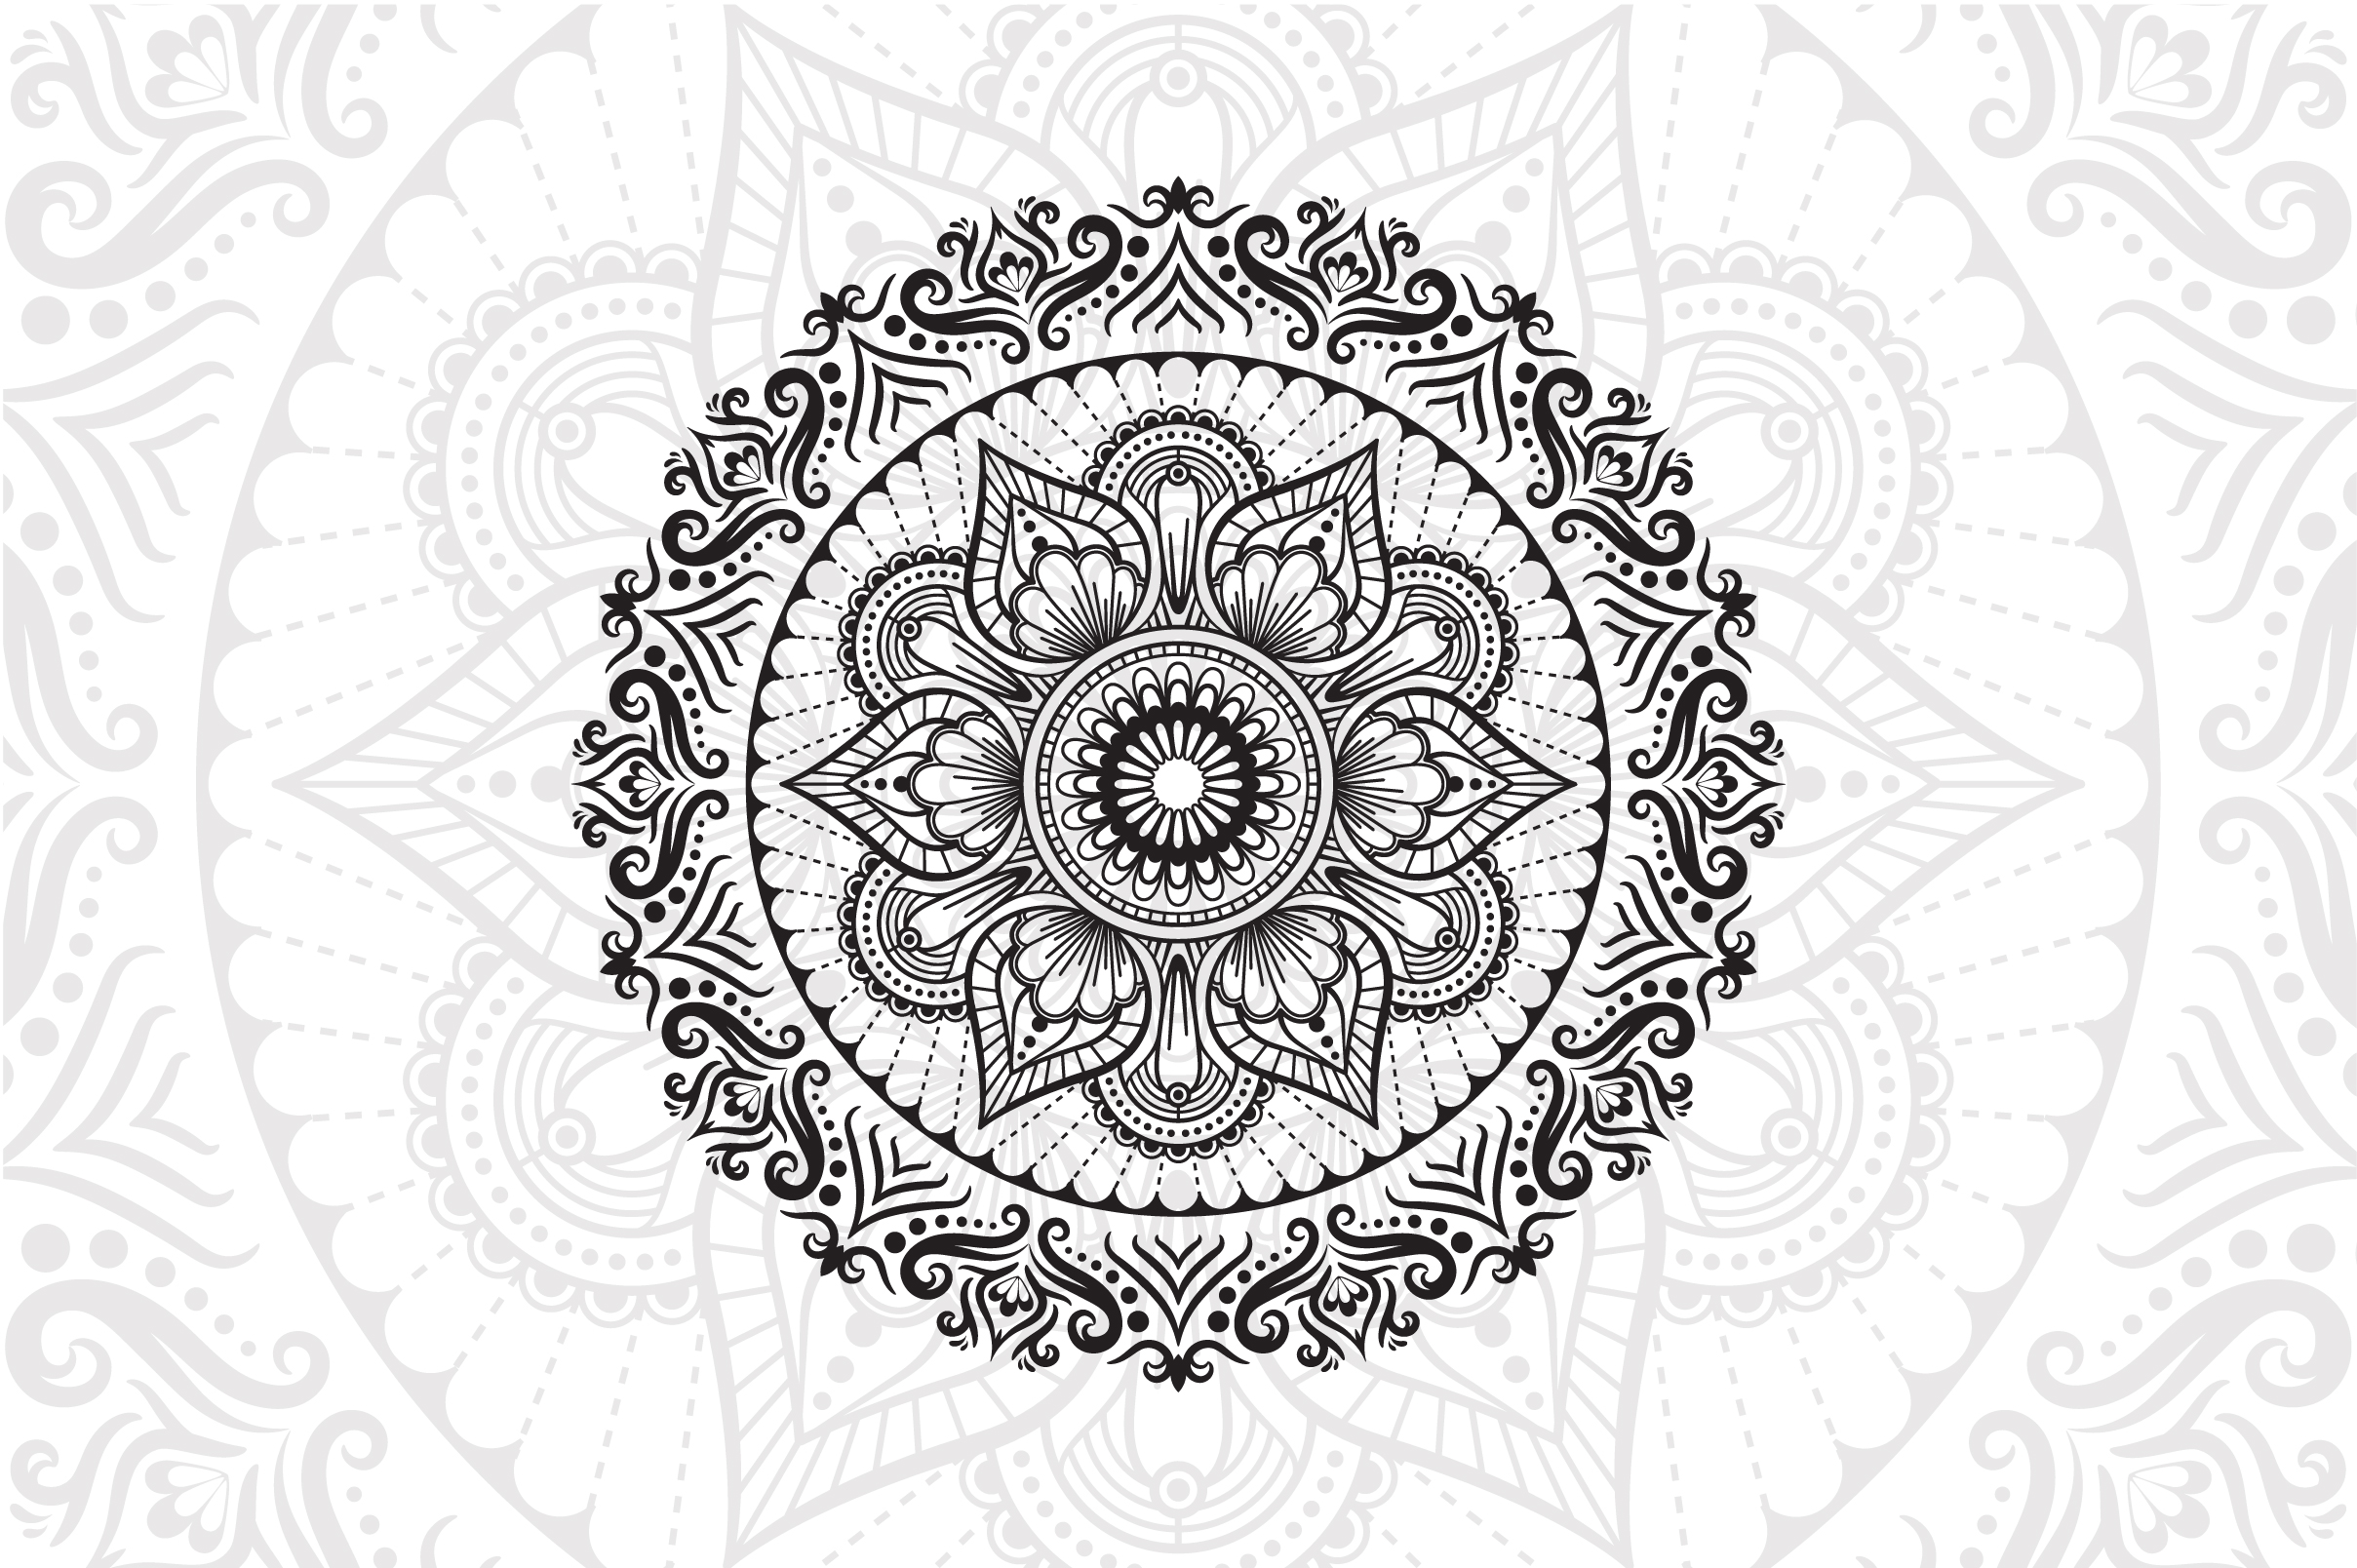 Download Free Flower Mandala Graphic By Izacuite Creative Fabrica for Cricut Explore, Silhouette and other cutting machines.